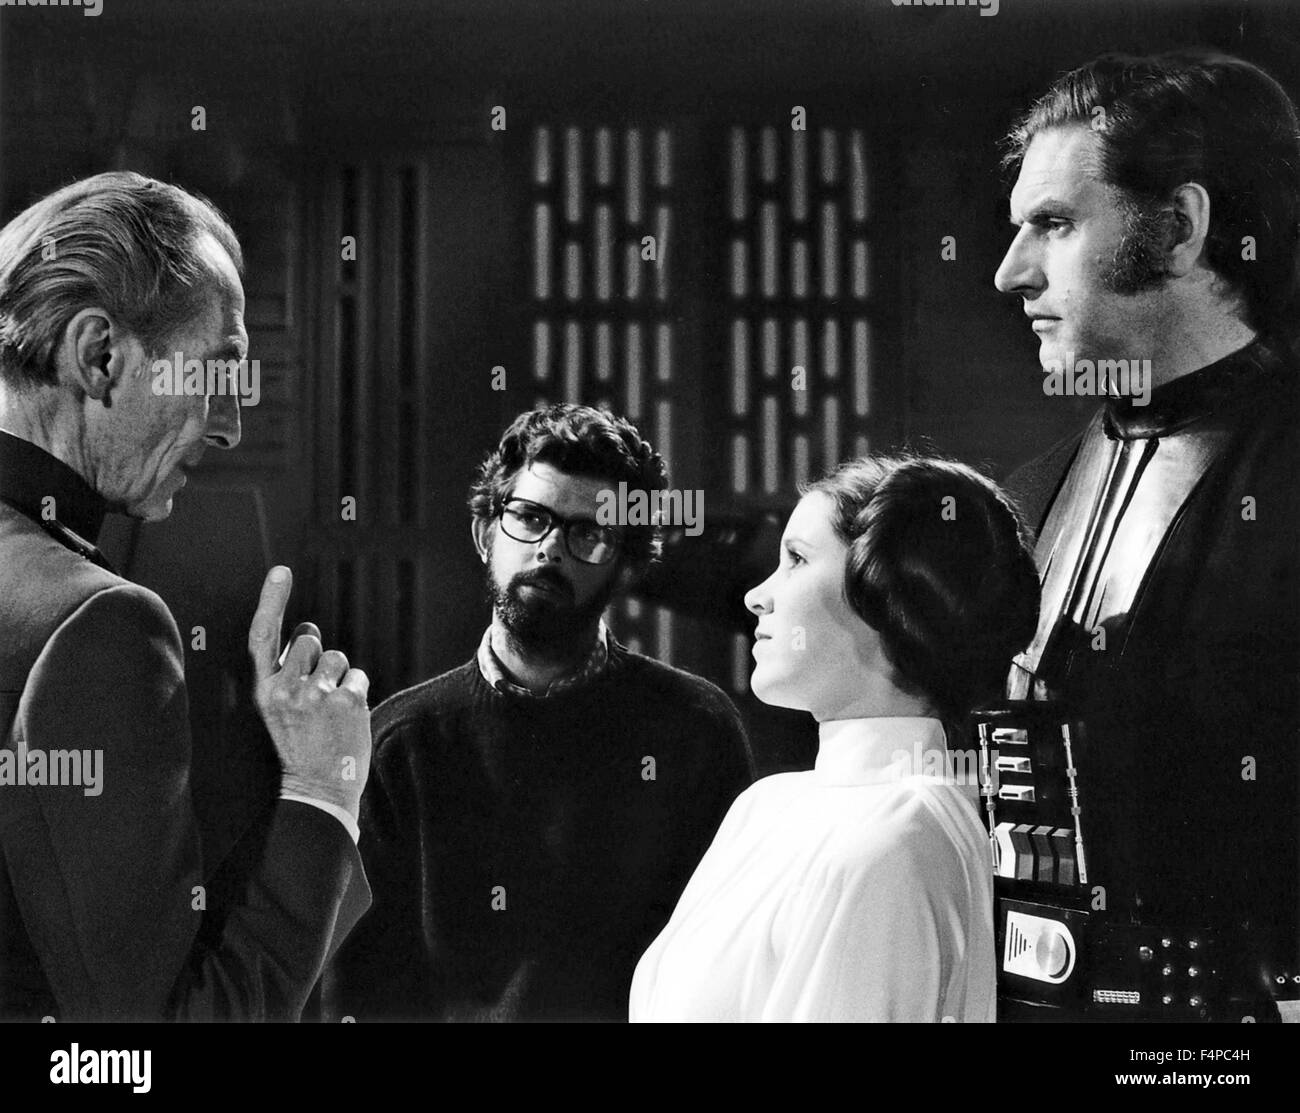 George lucas, Peter Cushing, Carrie Fisher, David Prowse / Star Wars - A New Hope 1977 directed by George Lucas - Stock Image